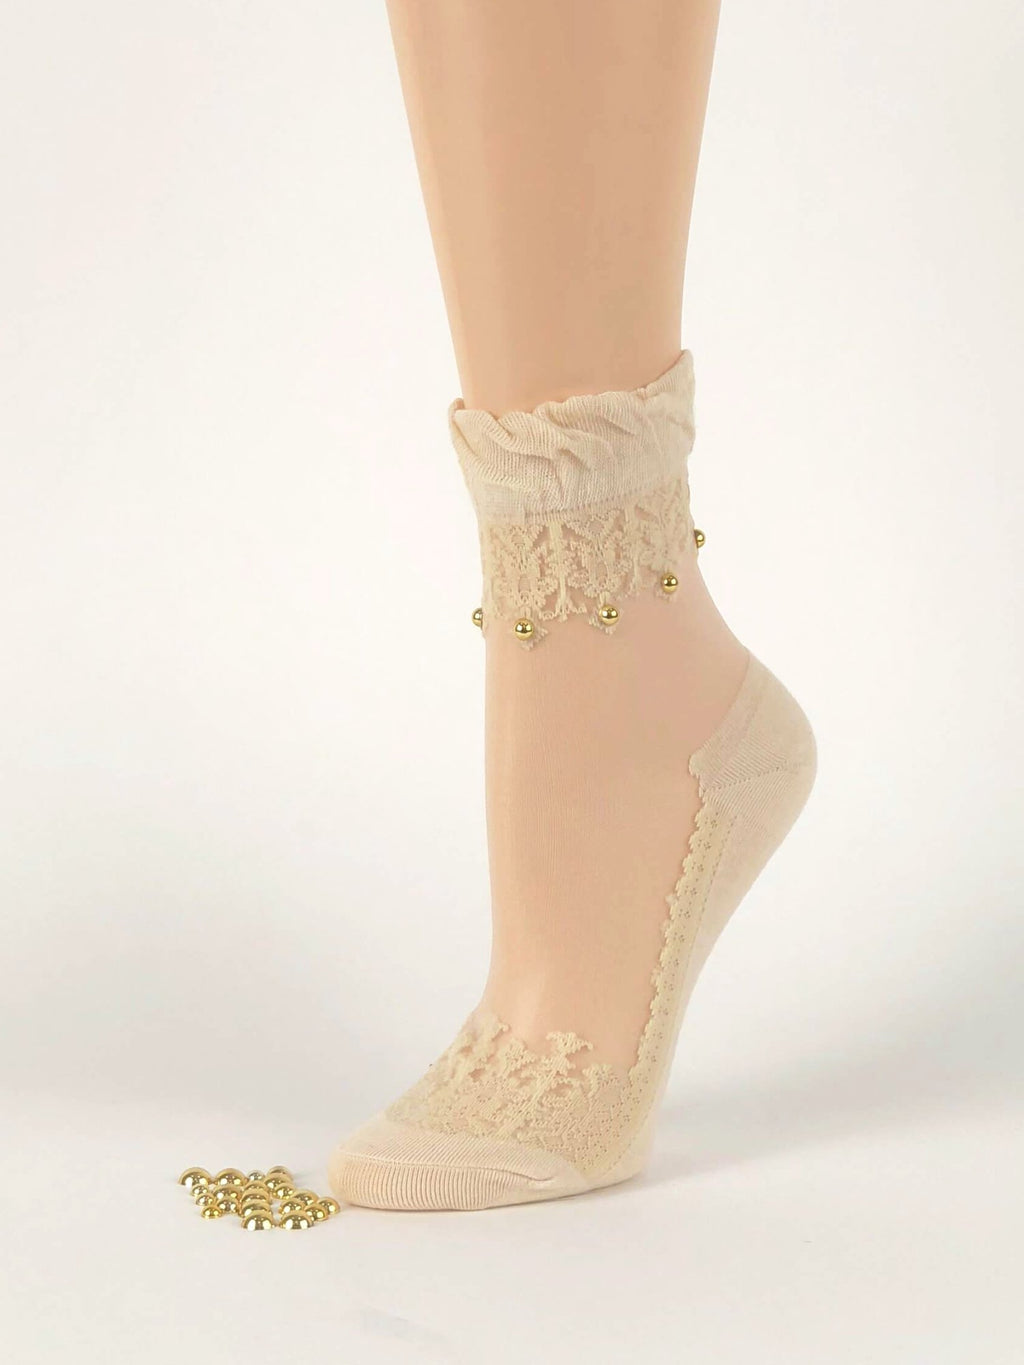 Pearled Skin Sheer Socks - Global Trendz Fashion®